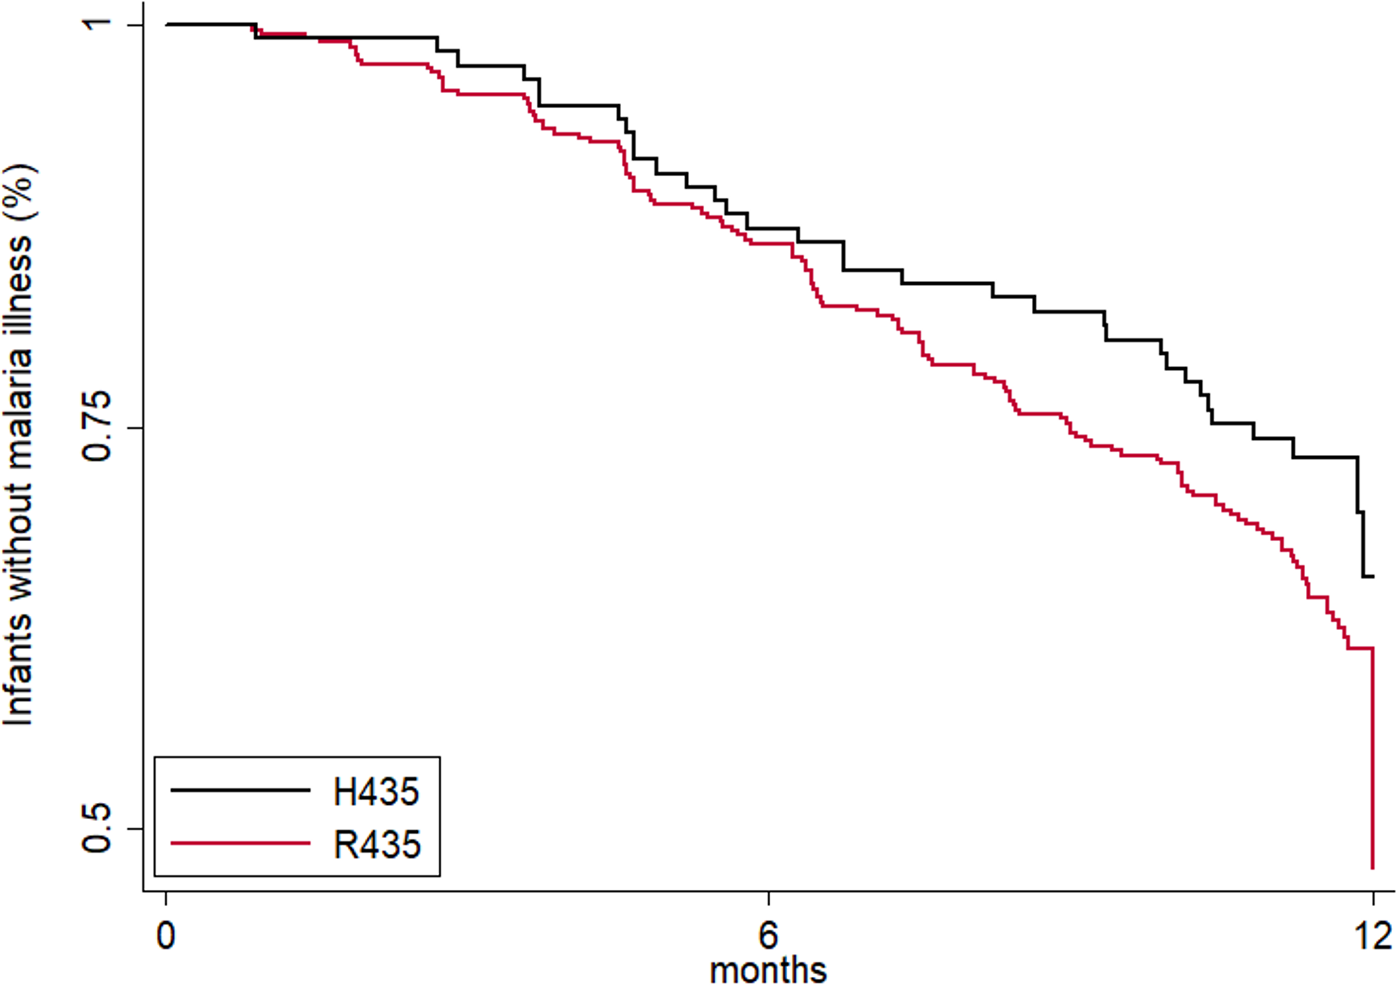 Maternal IgG3-H435 polymorphism is associated with a decreased risk of symptomatic malaria in infants from birth to 12 months of age.